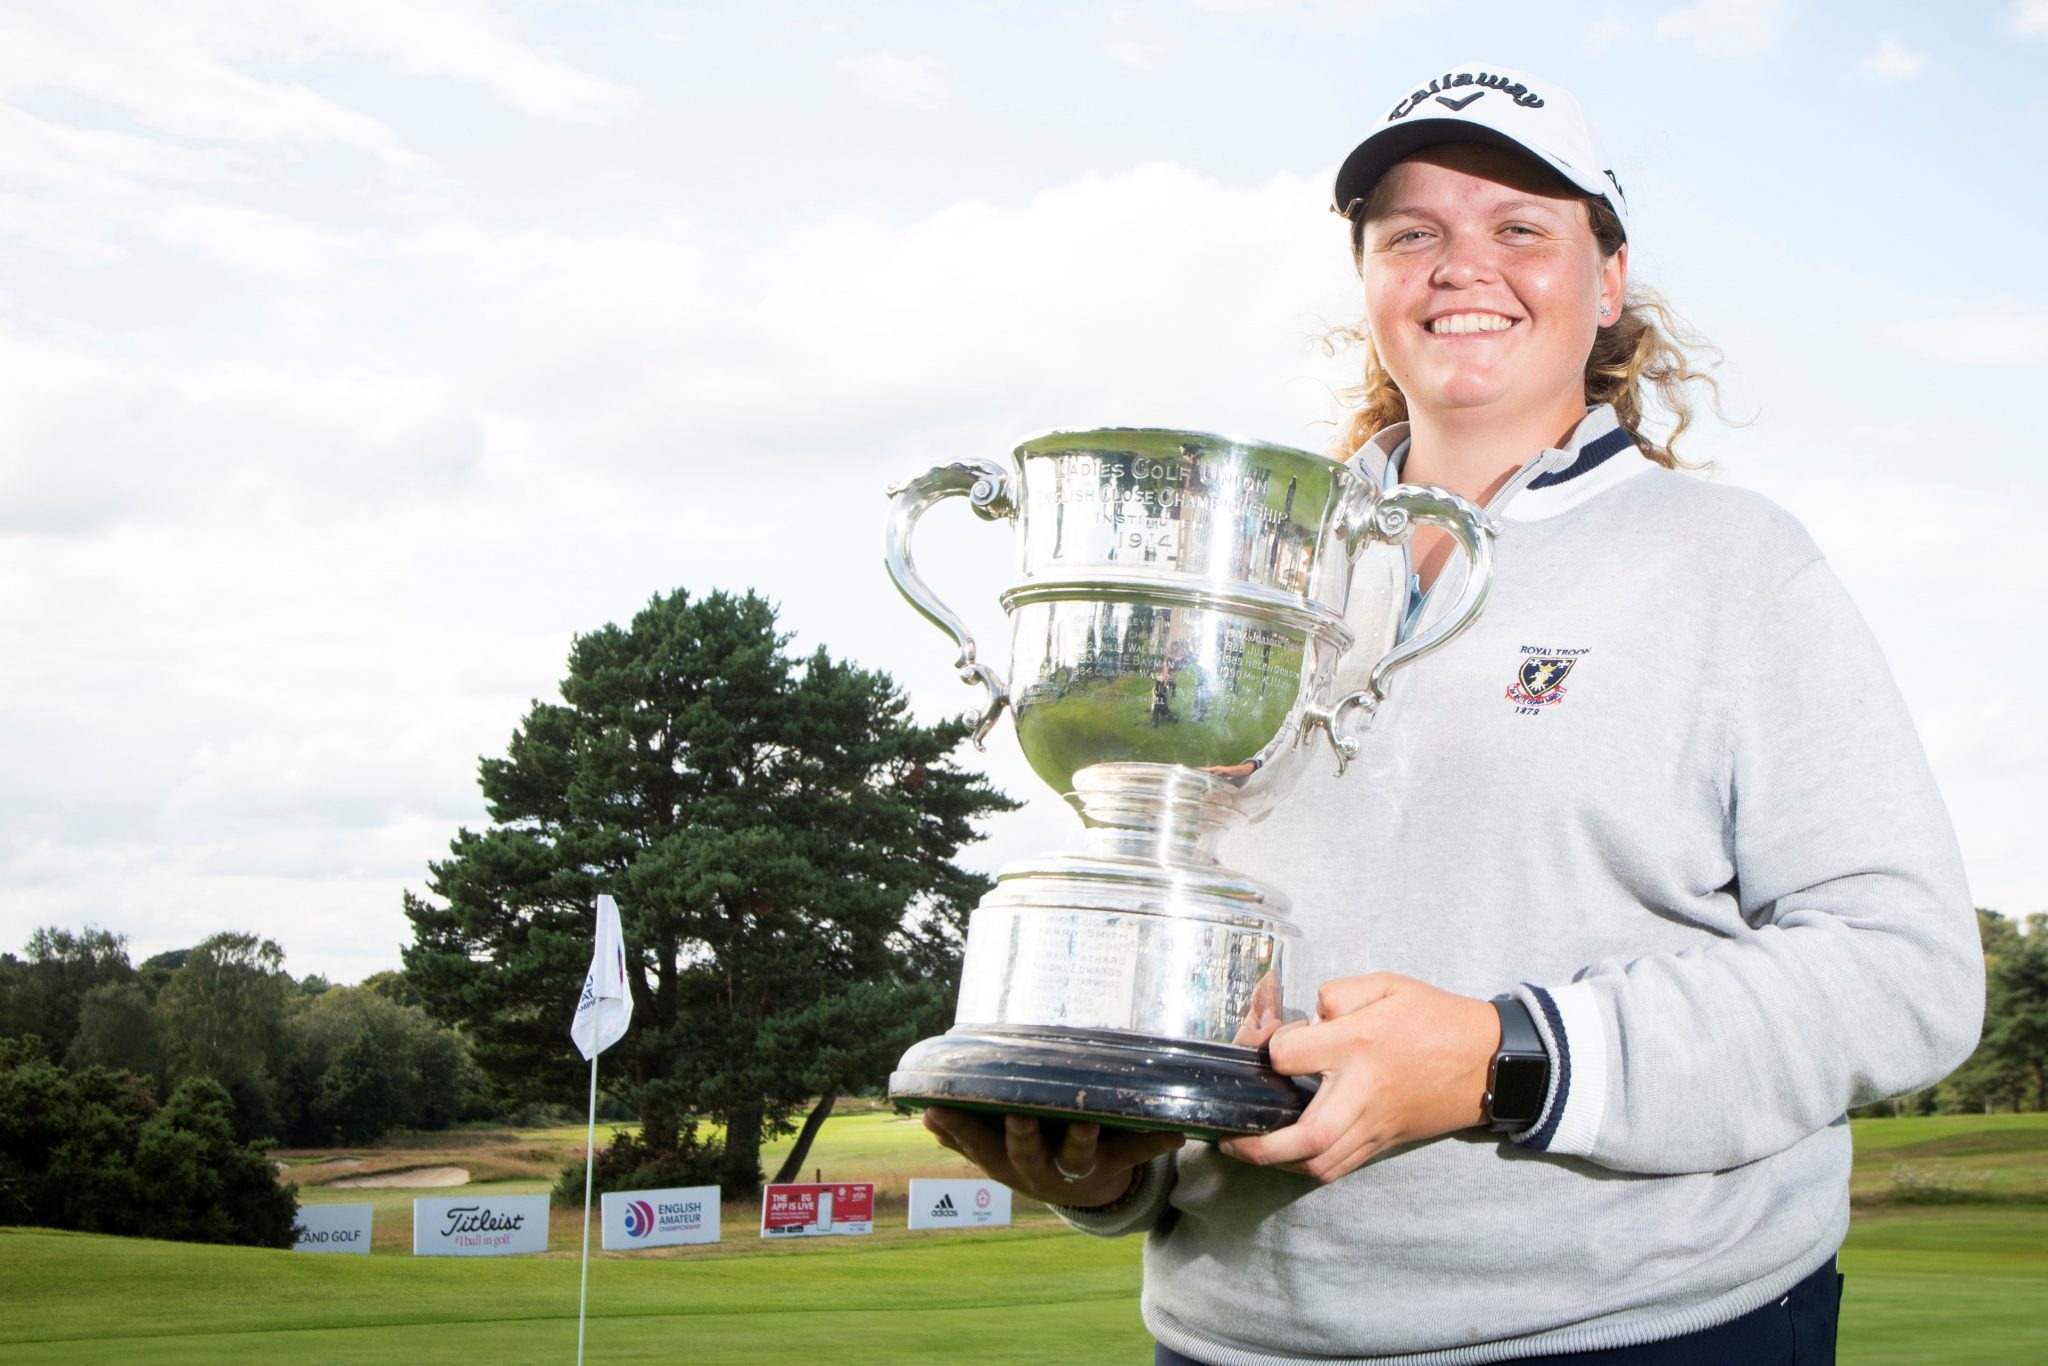 English Women's Amateur – Final: Rudgeley rides rollercoaster to lift trophy